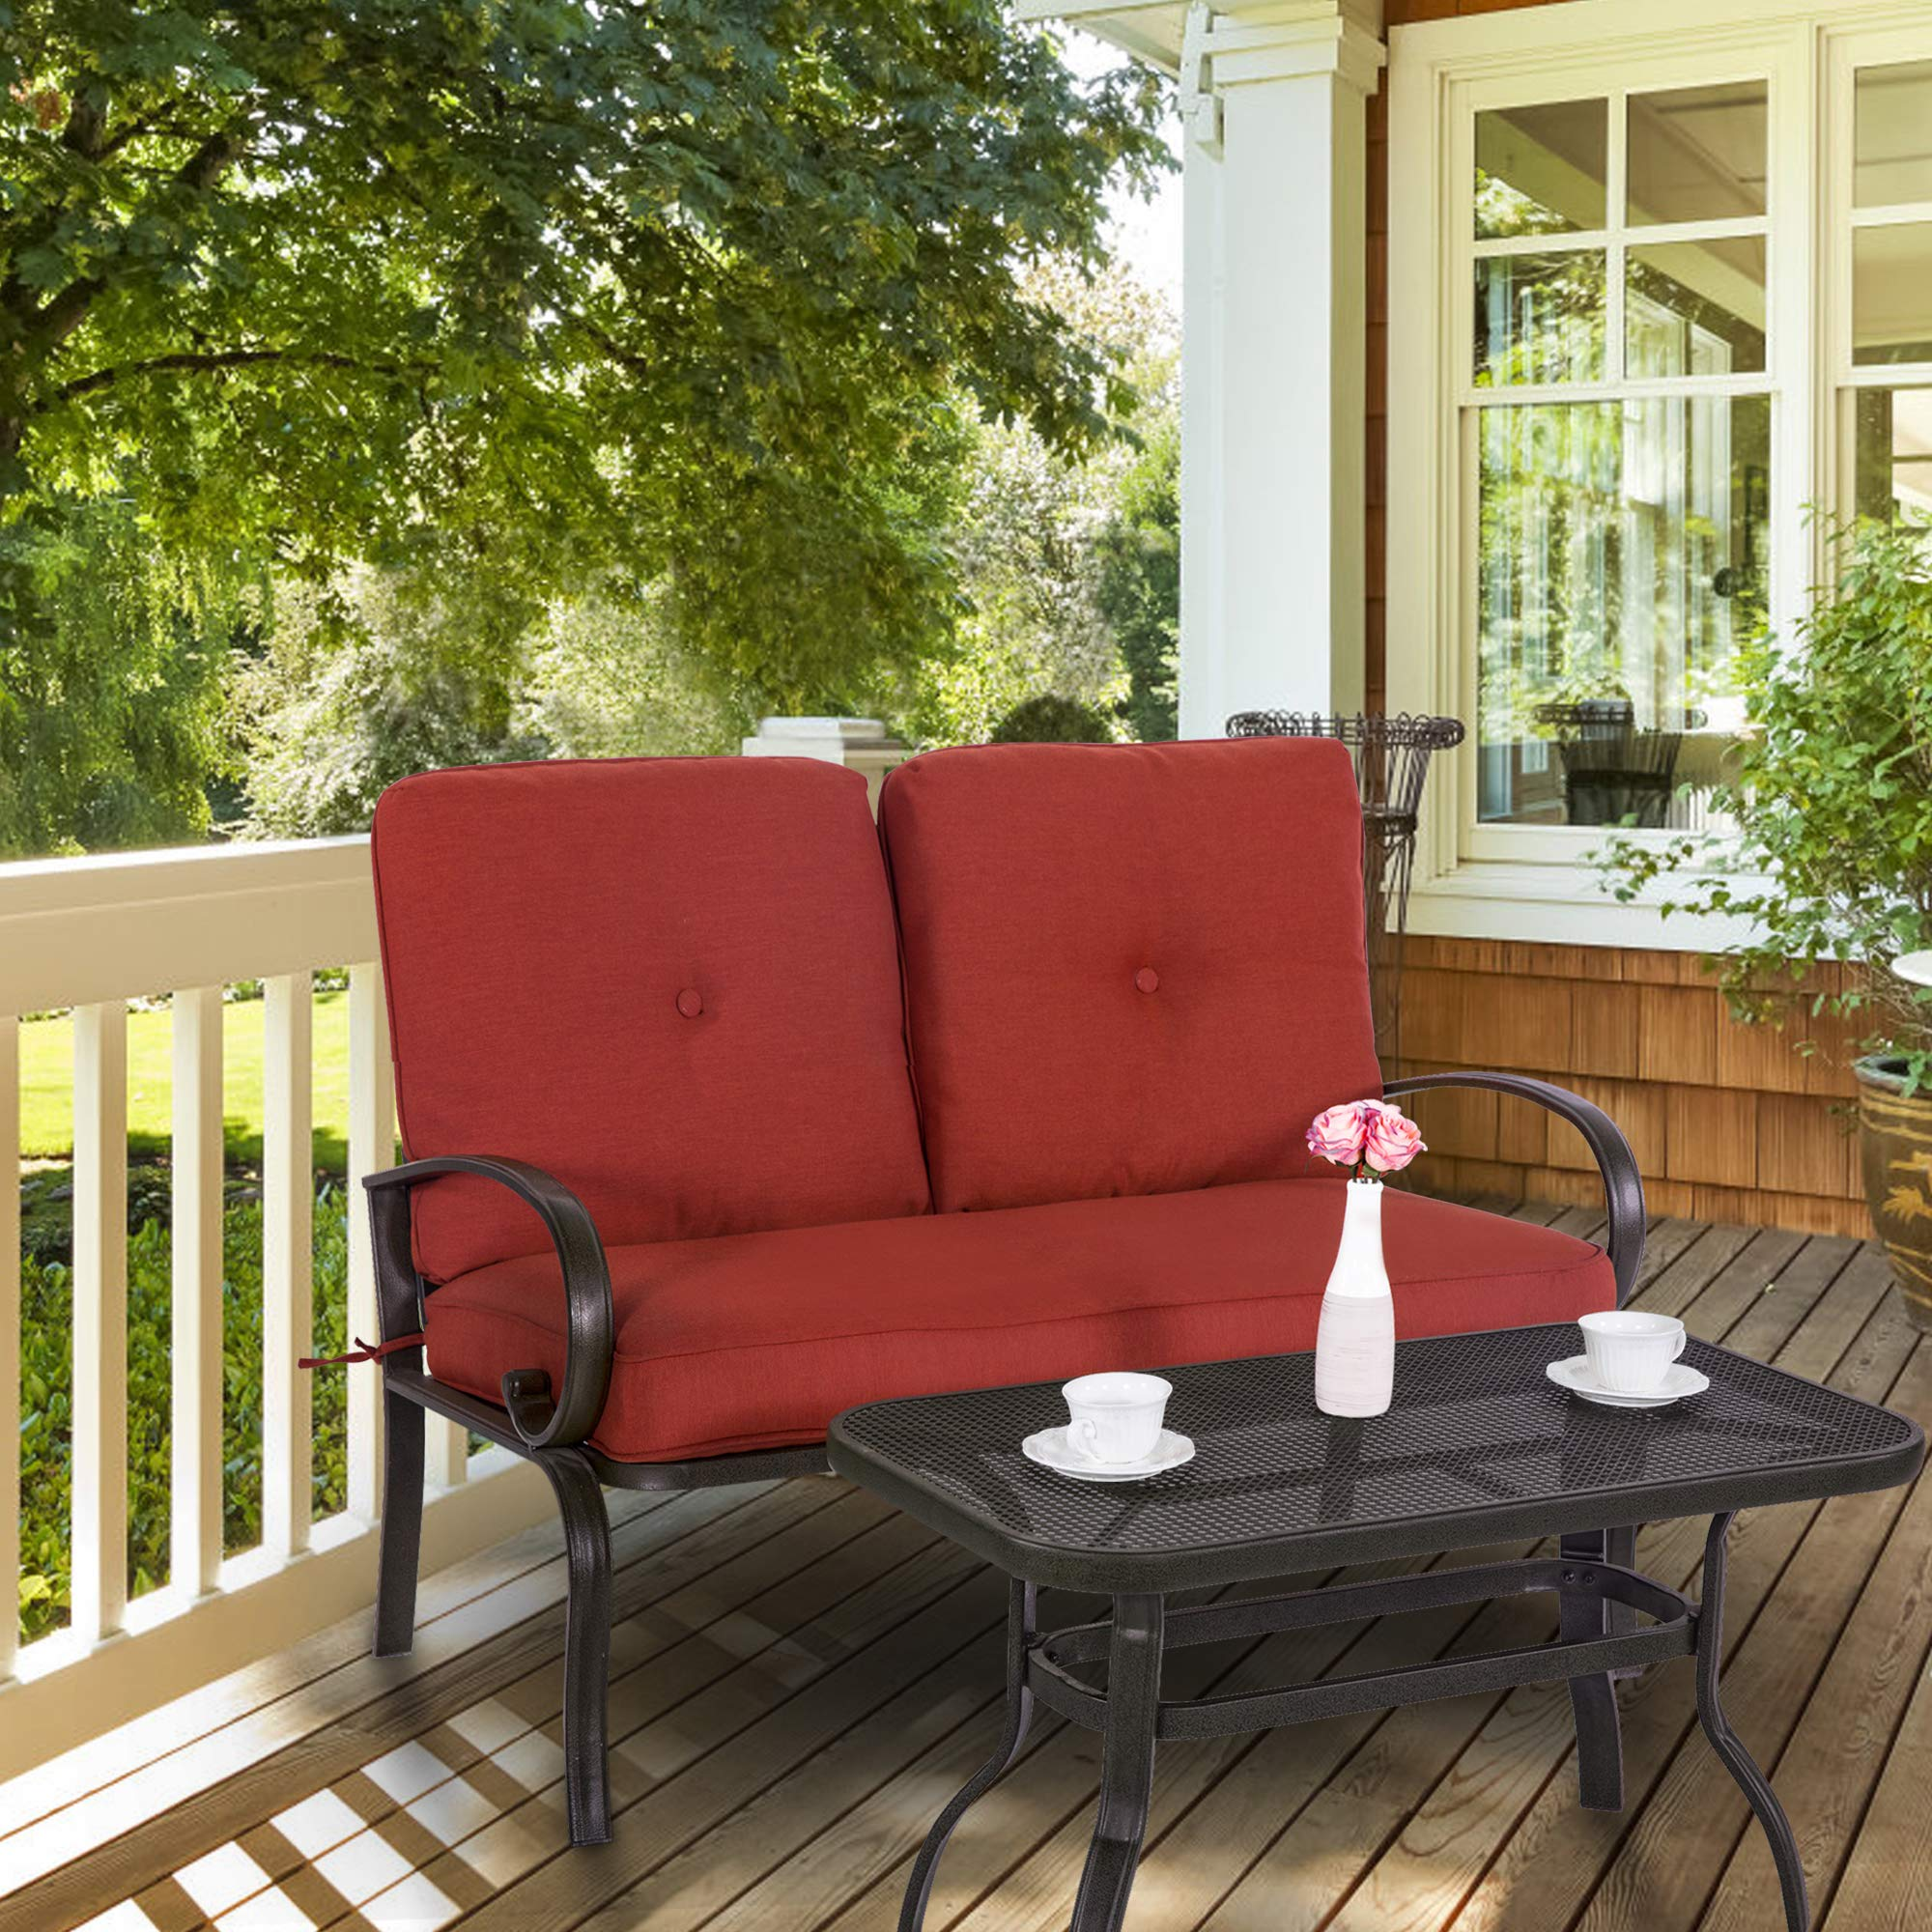 Yardwind Patio Loveseat 2 Pieces Sofa Seating Garden Patio Love Seat Bench Coffee Table Set Durable Wrought Iron Frame Thick Cushions Patio, Yard, Porch, Garden, Backyard, Balcony (Brick Red)